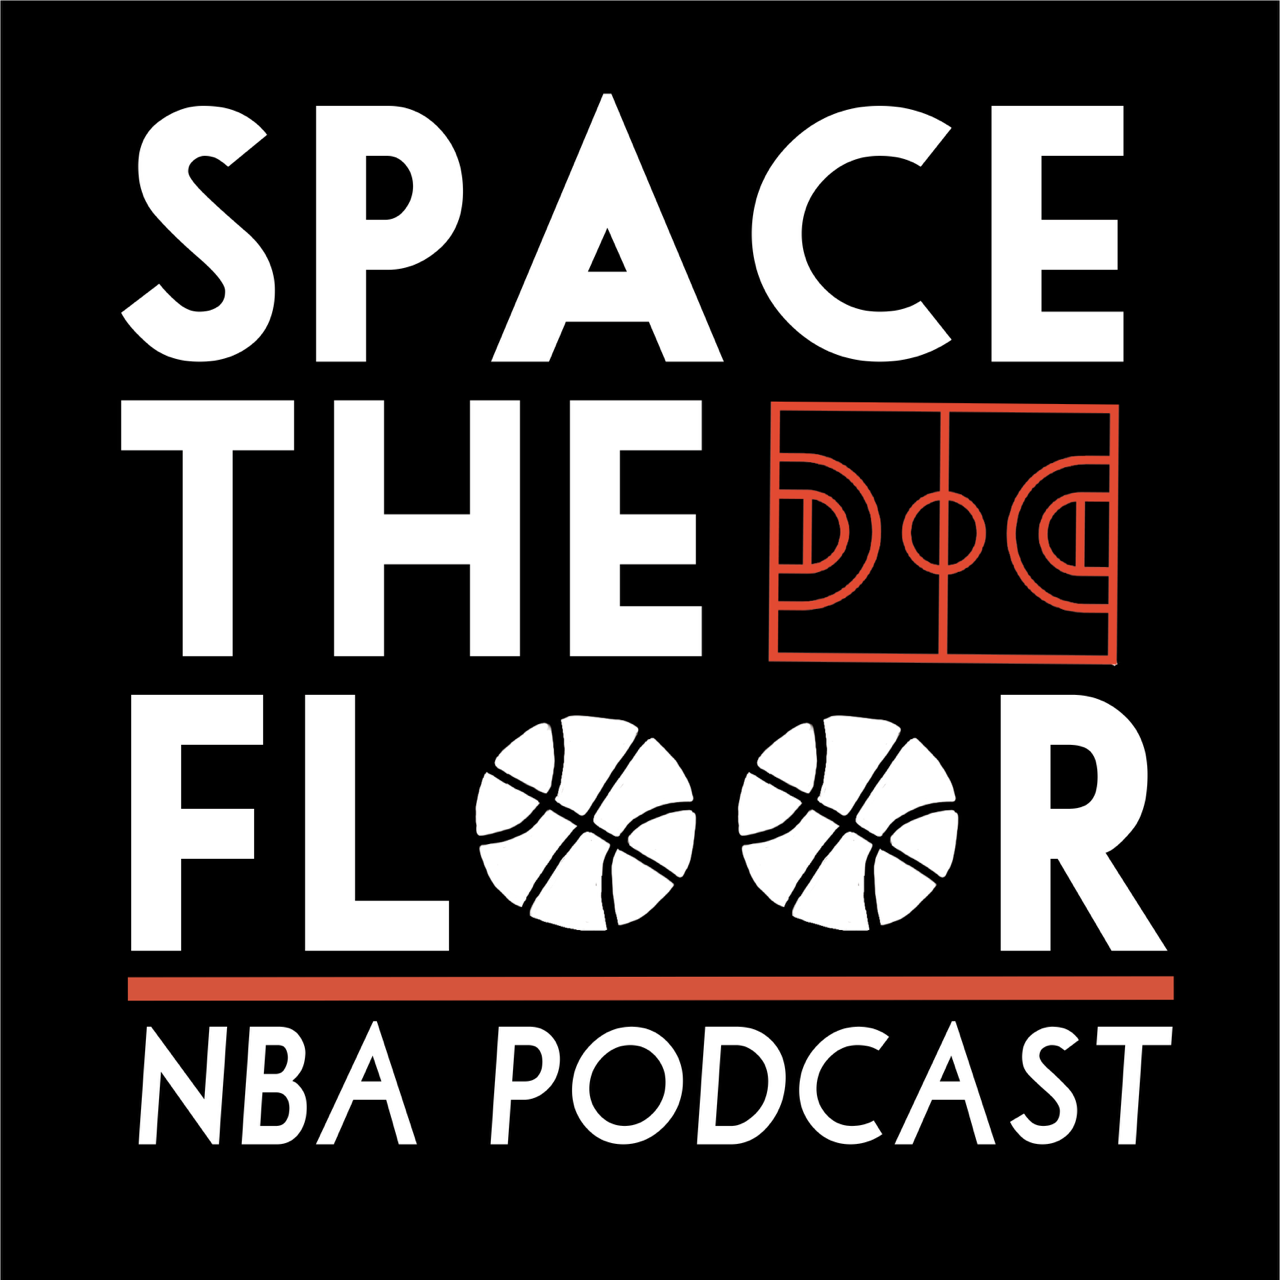 Space the Floor NBA Podcast podcast